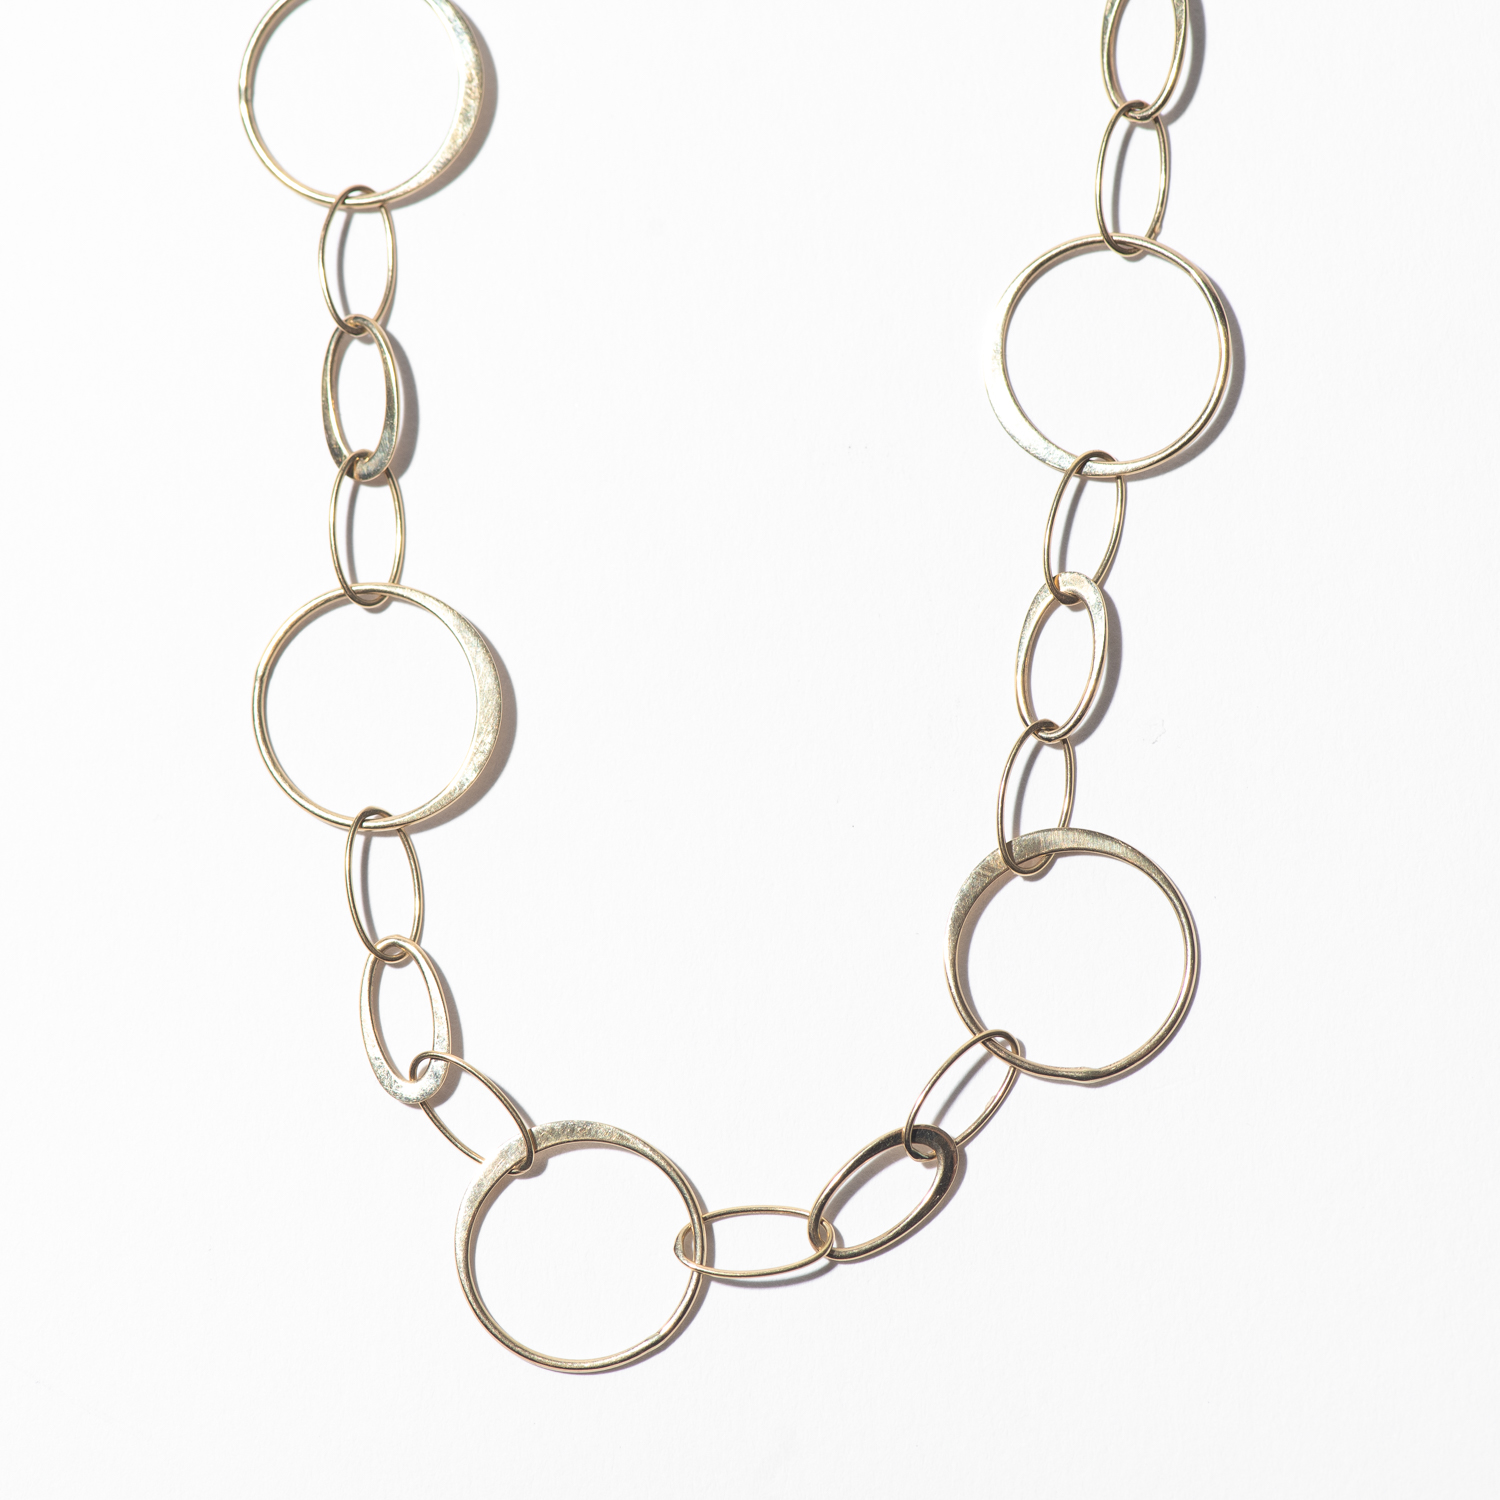 Design Thirty Two. - Modern Yellow Gold Chain Statement Necklace